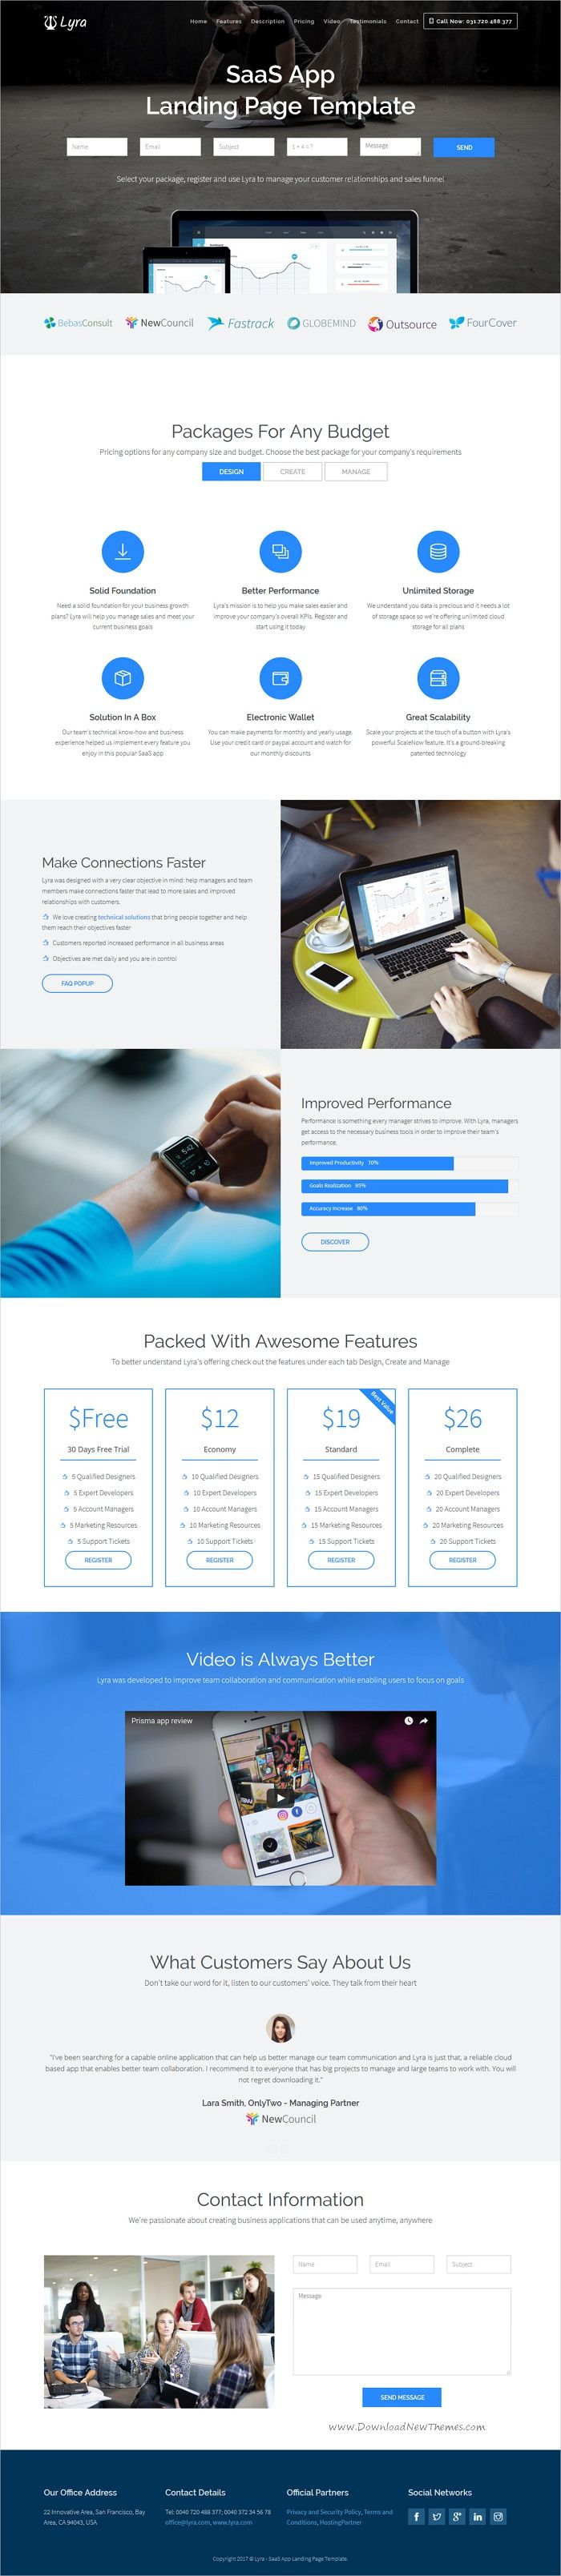 Lyra is clean and modern design 8in1 responsive #Joomla template for multipurpose app #landing page website with page builder download now > https://themeforest.net/item/lyra-saas-app-landing-page-multipurpose-joomla-template-with-page-builder/19909055?ref=Datasata